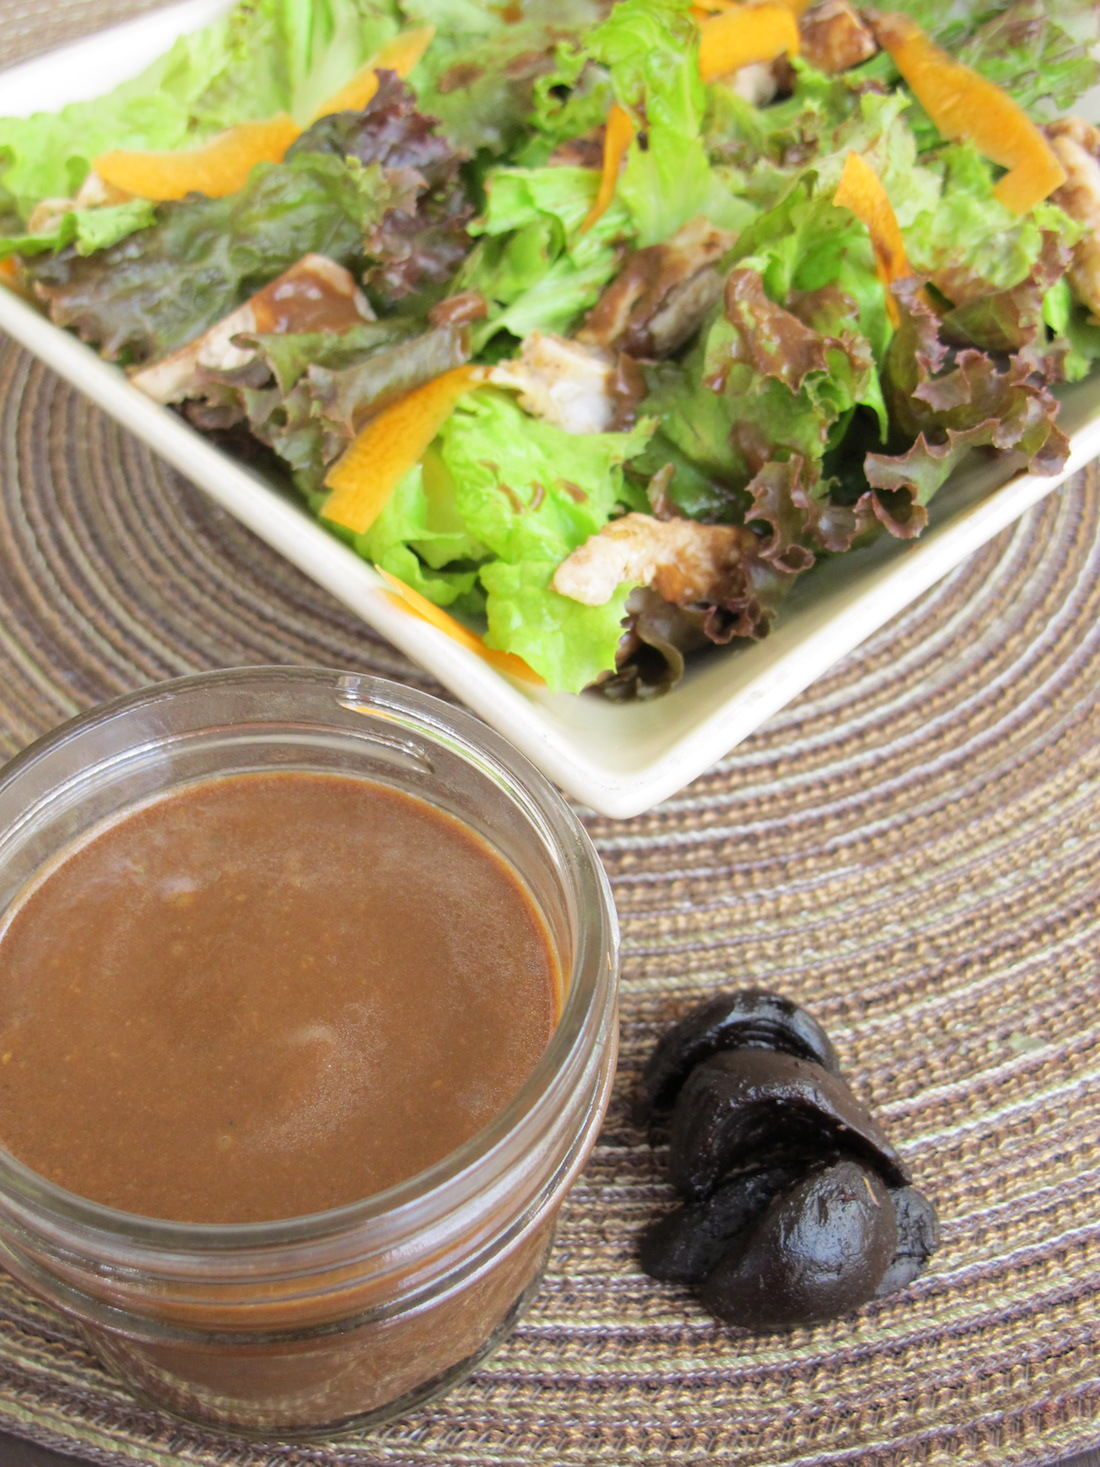 Black Garlic sauce and salad